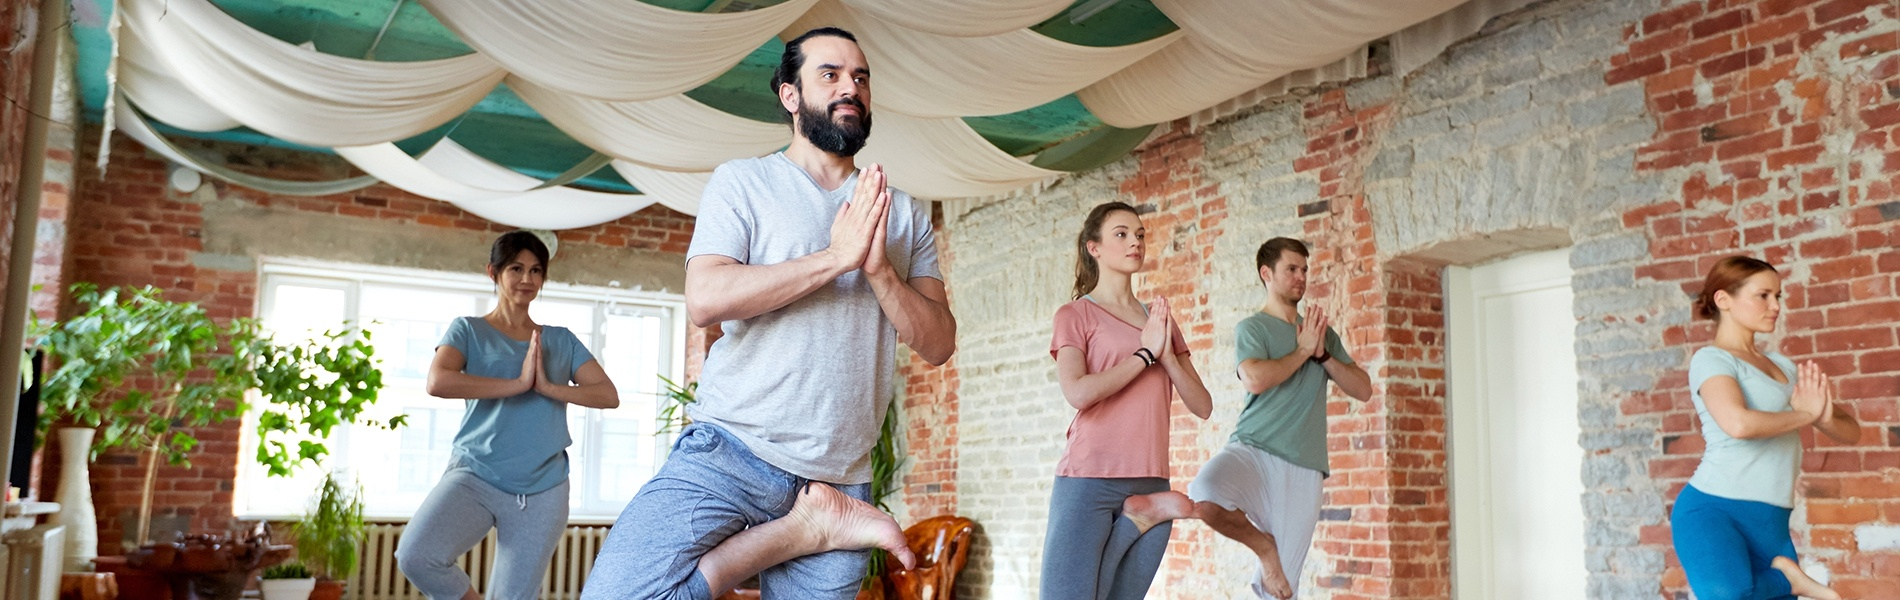 When Should You Open Your Second Yoga Studio?